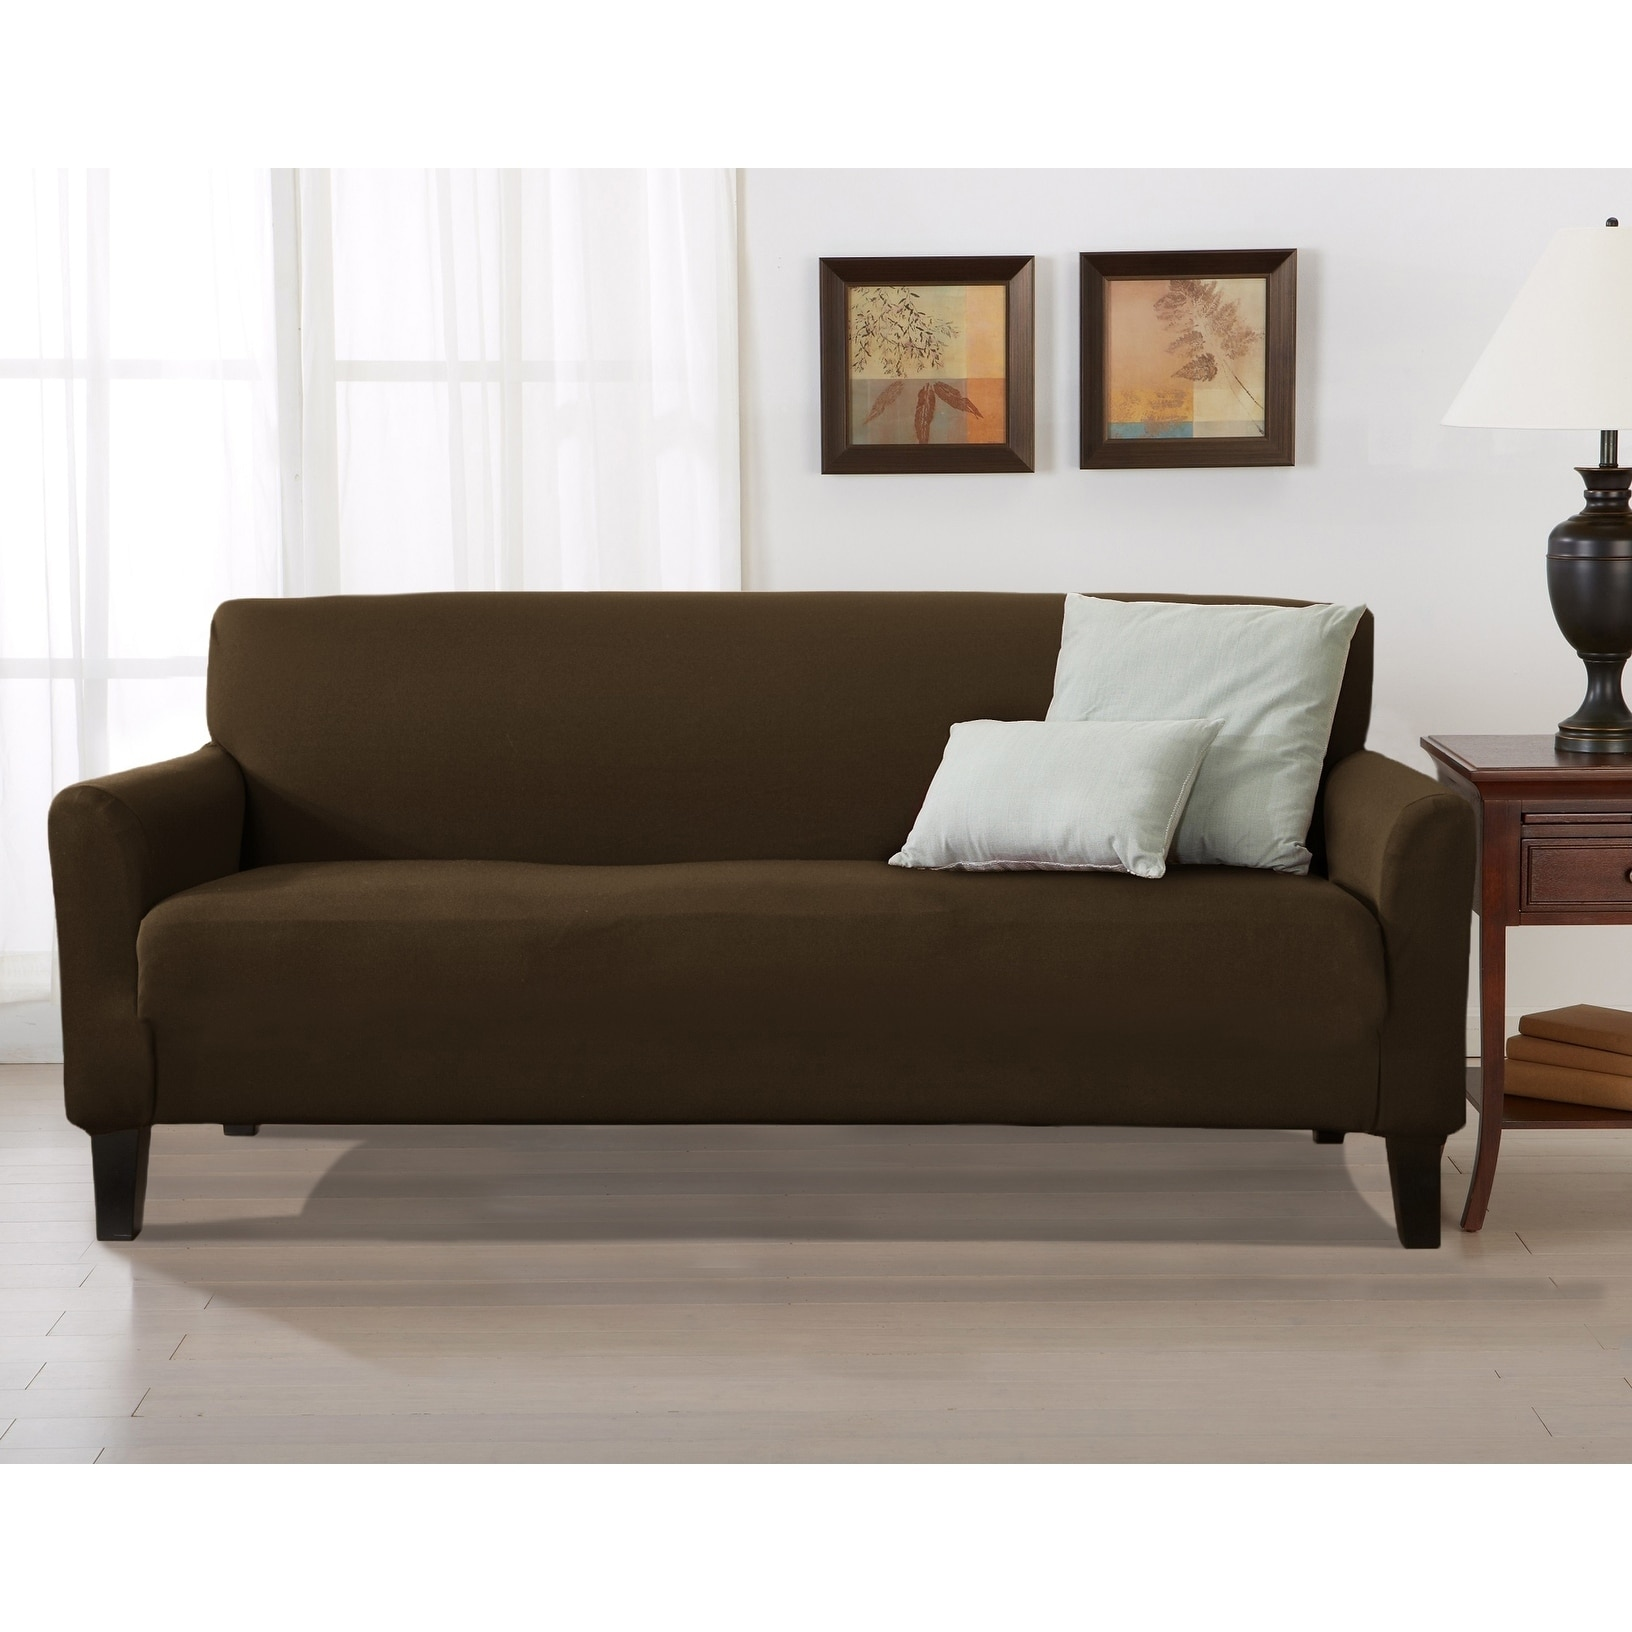 Home Fashion Designs Brenna Solid Collection Stretch Form Ed Sofa Slipcover On Free Shipping Orders Over 45 24301660